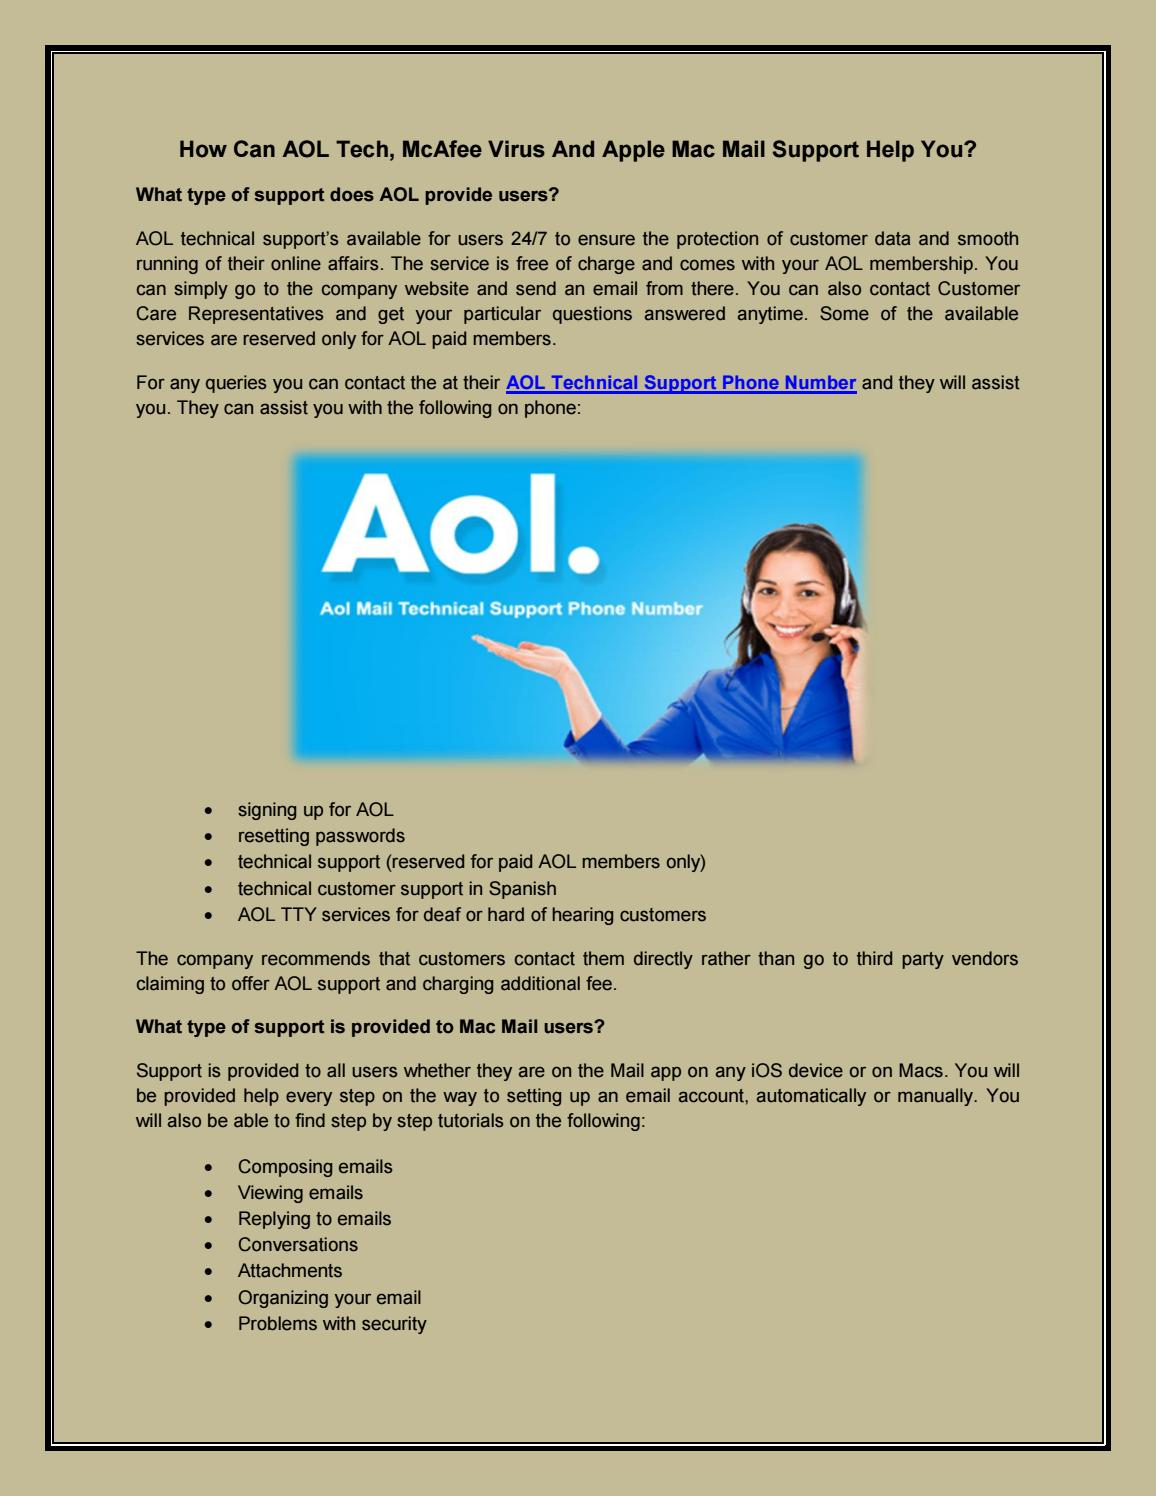 AOL Technical Support Phone Number | Apple Mac Mail Support